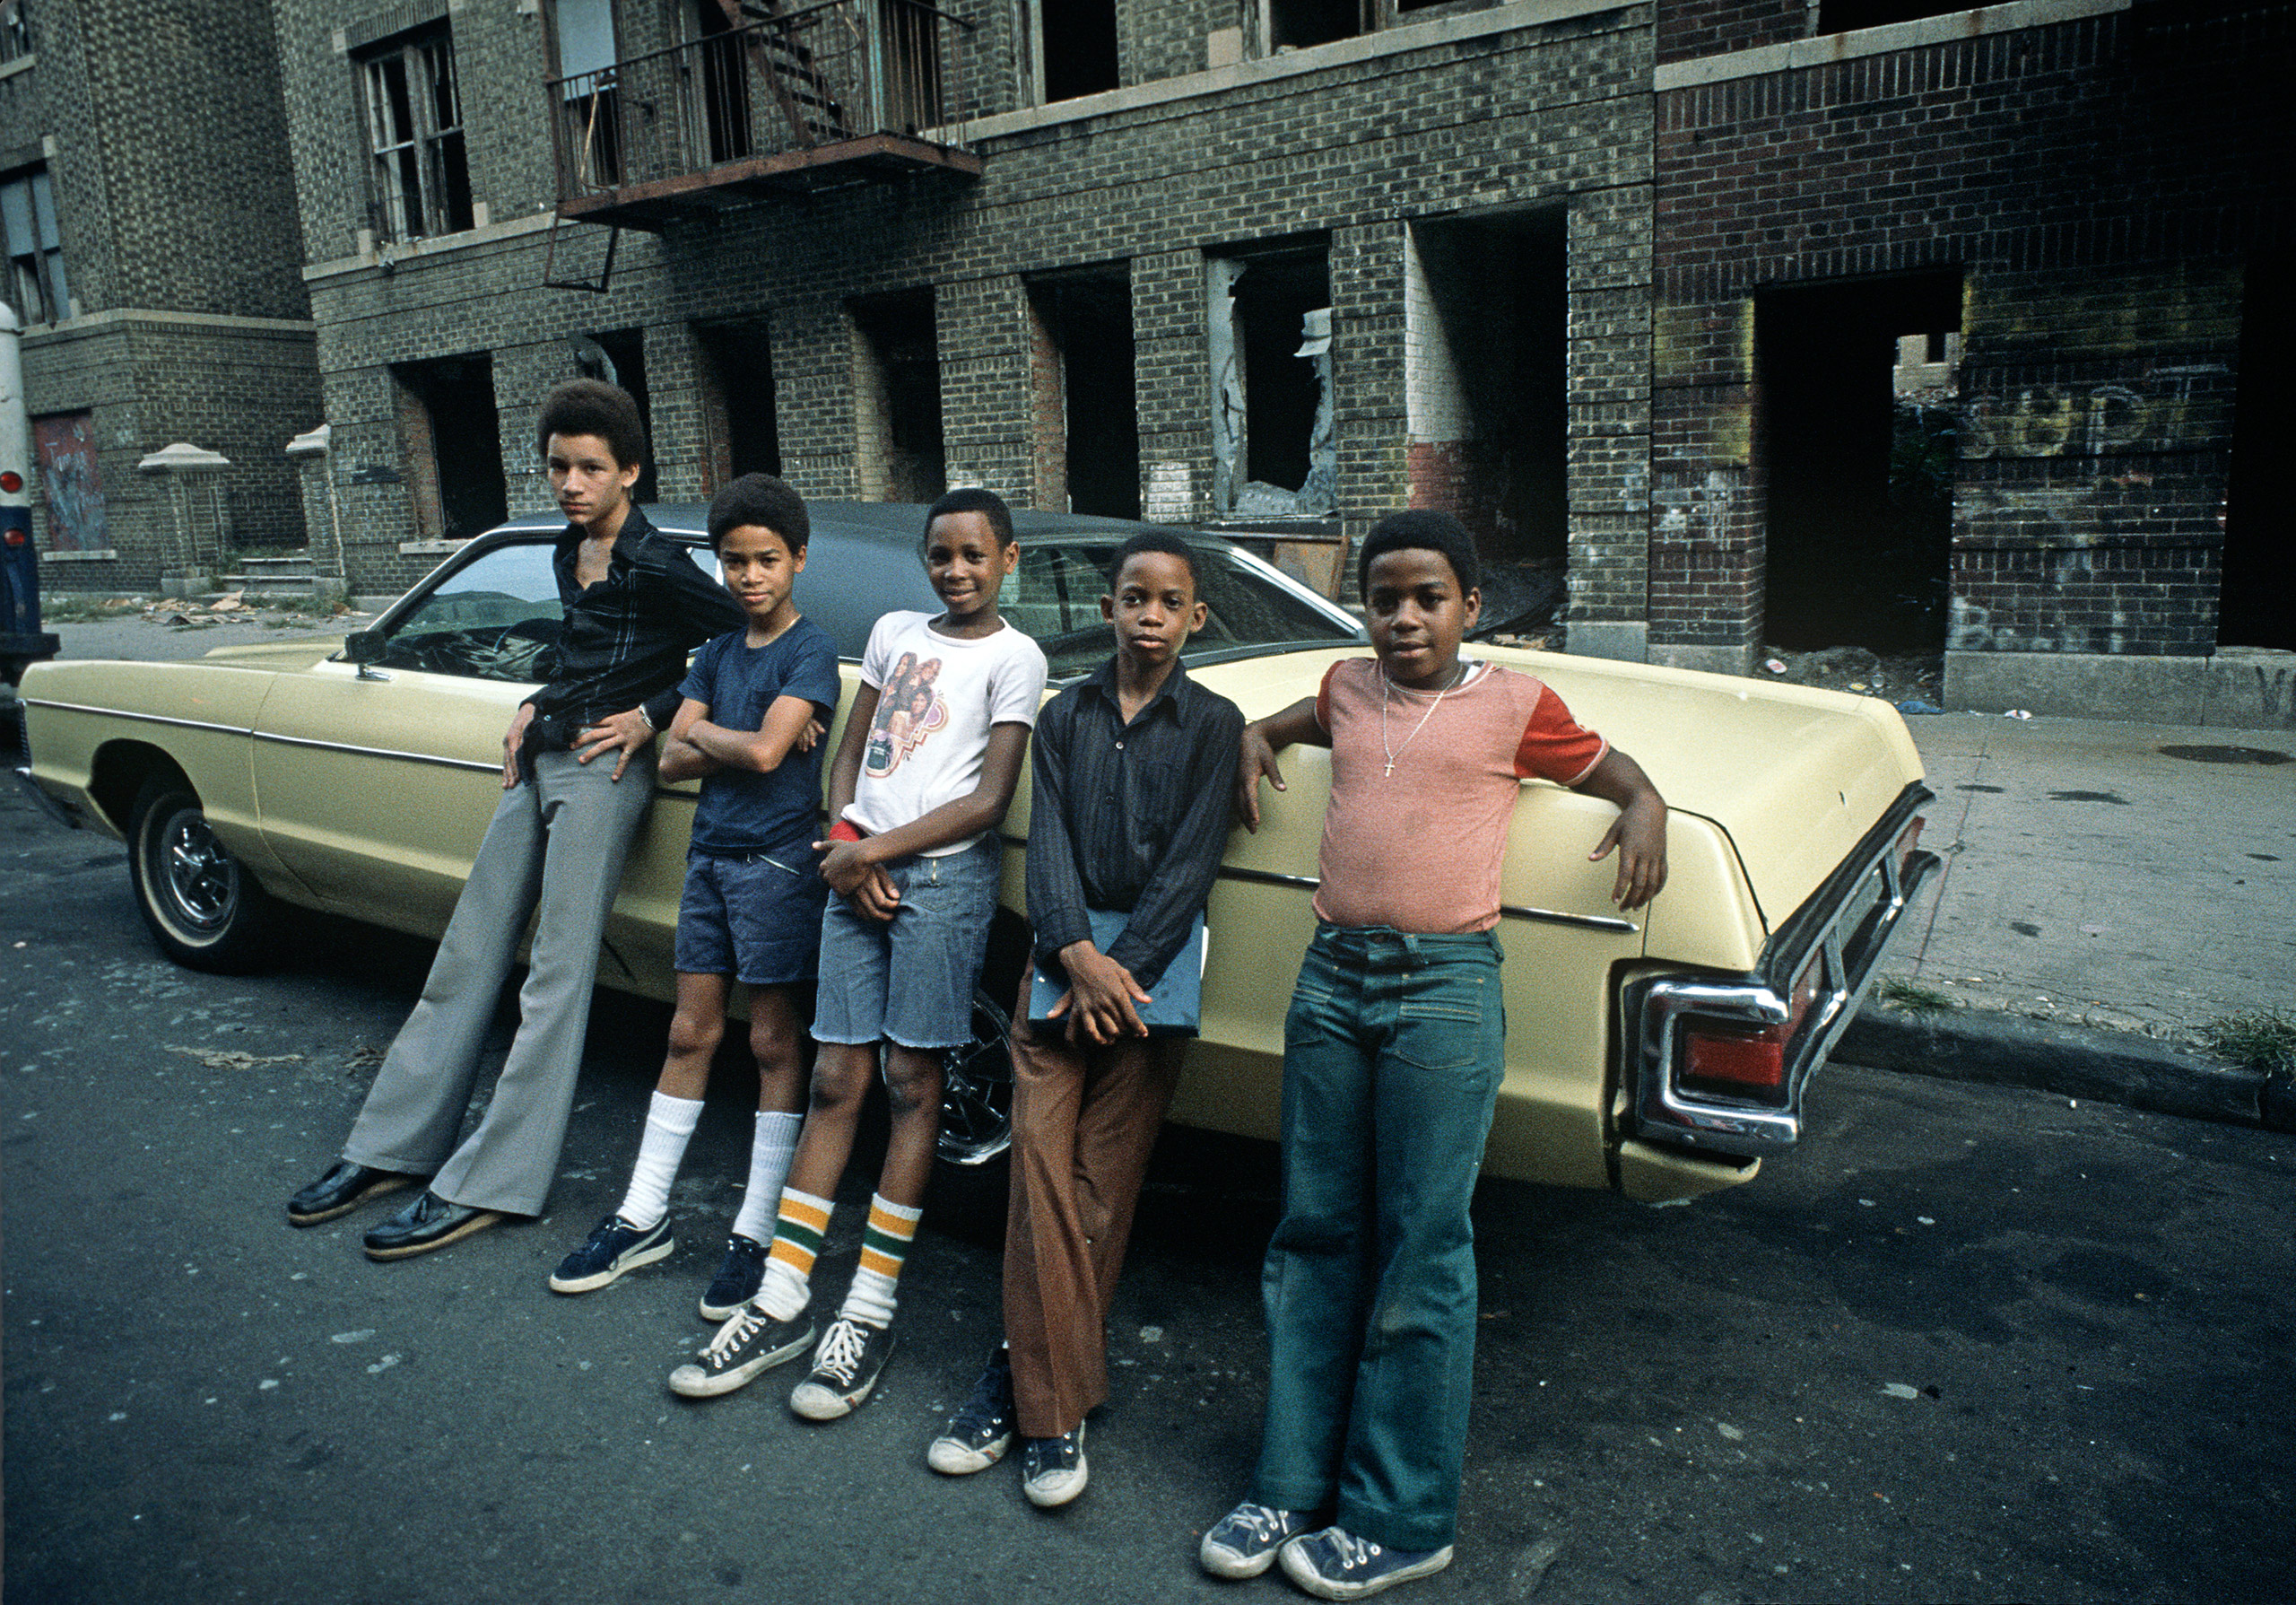 South Bronx teenagers in front of abandoned tenement burnt-out buildings, South Bronx, New York, August 1977.